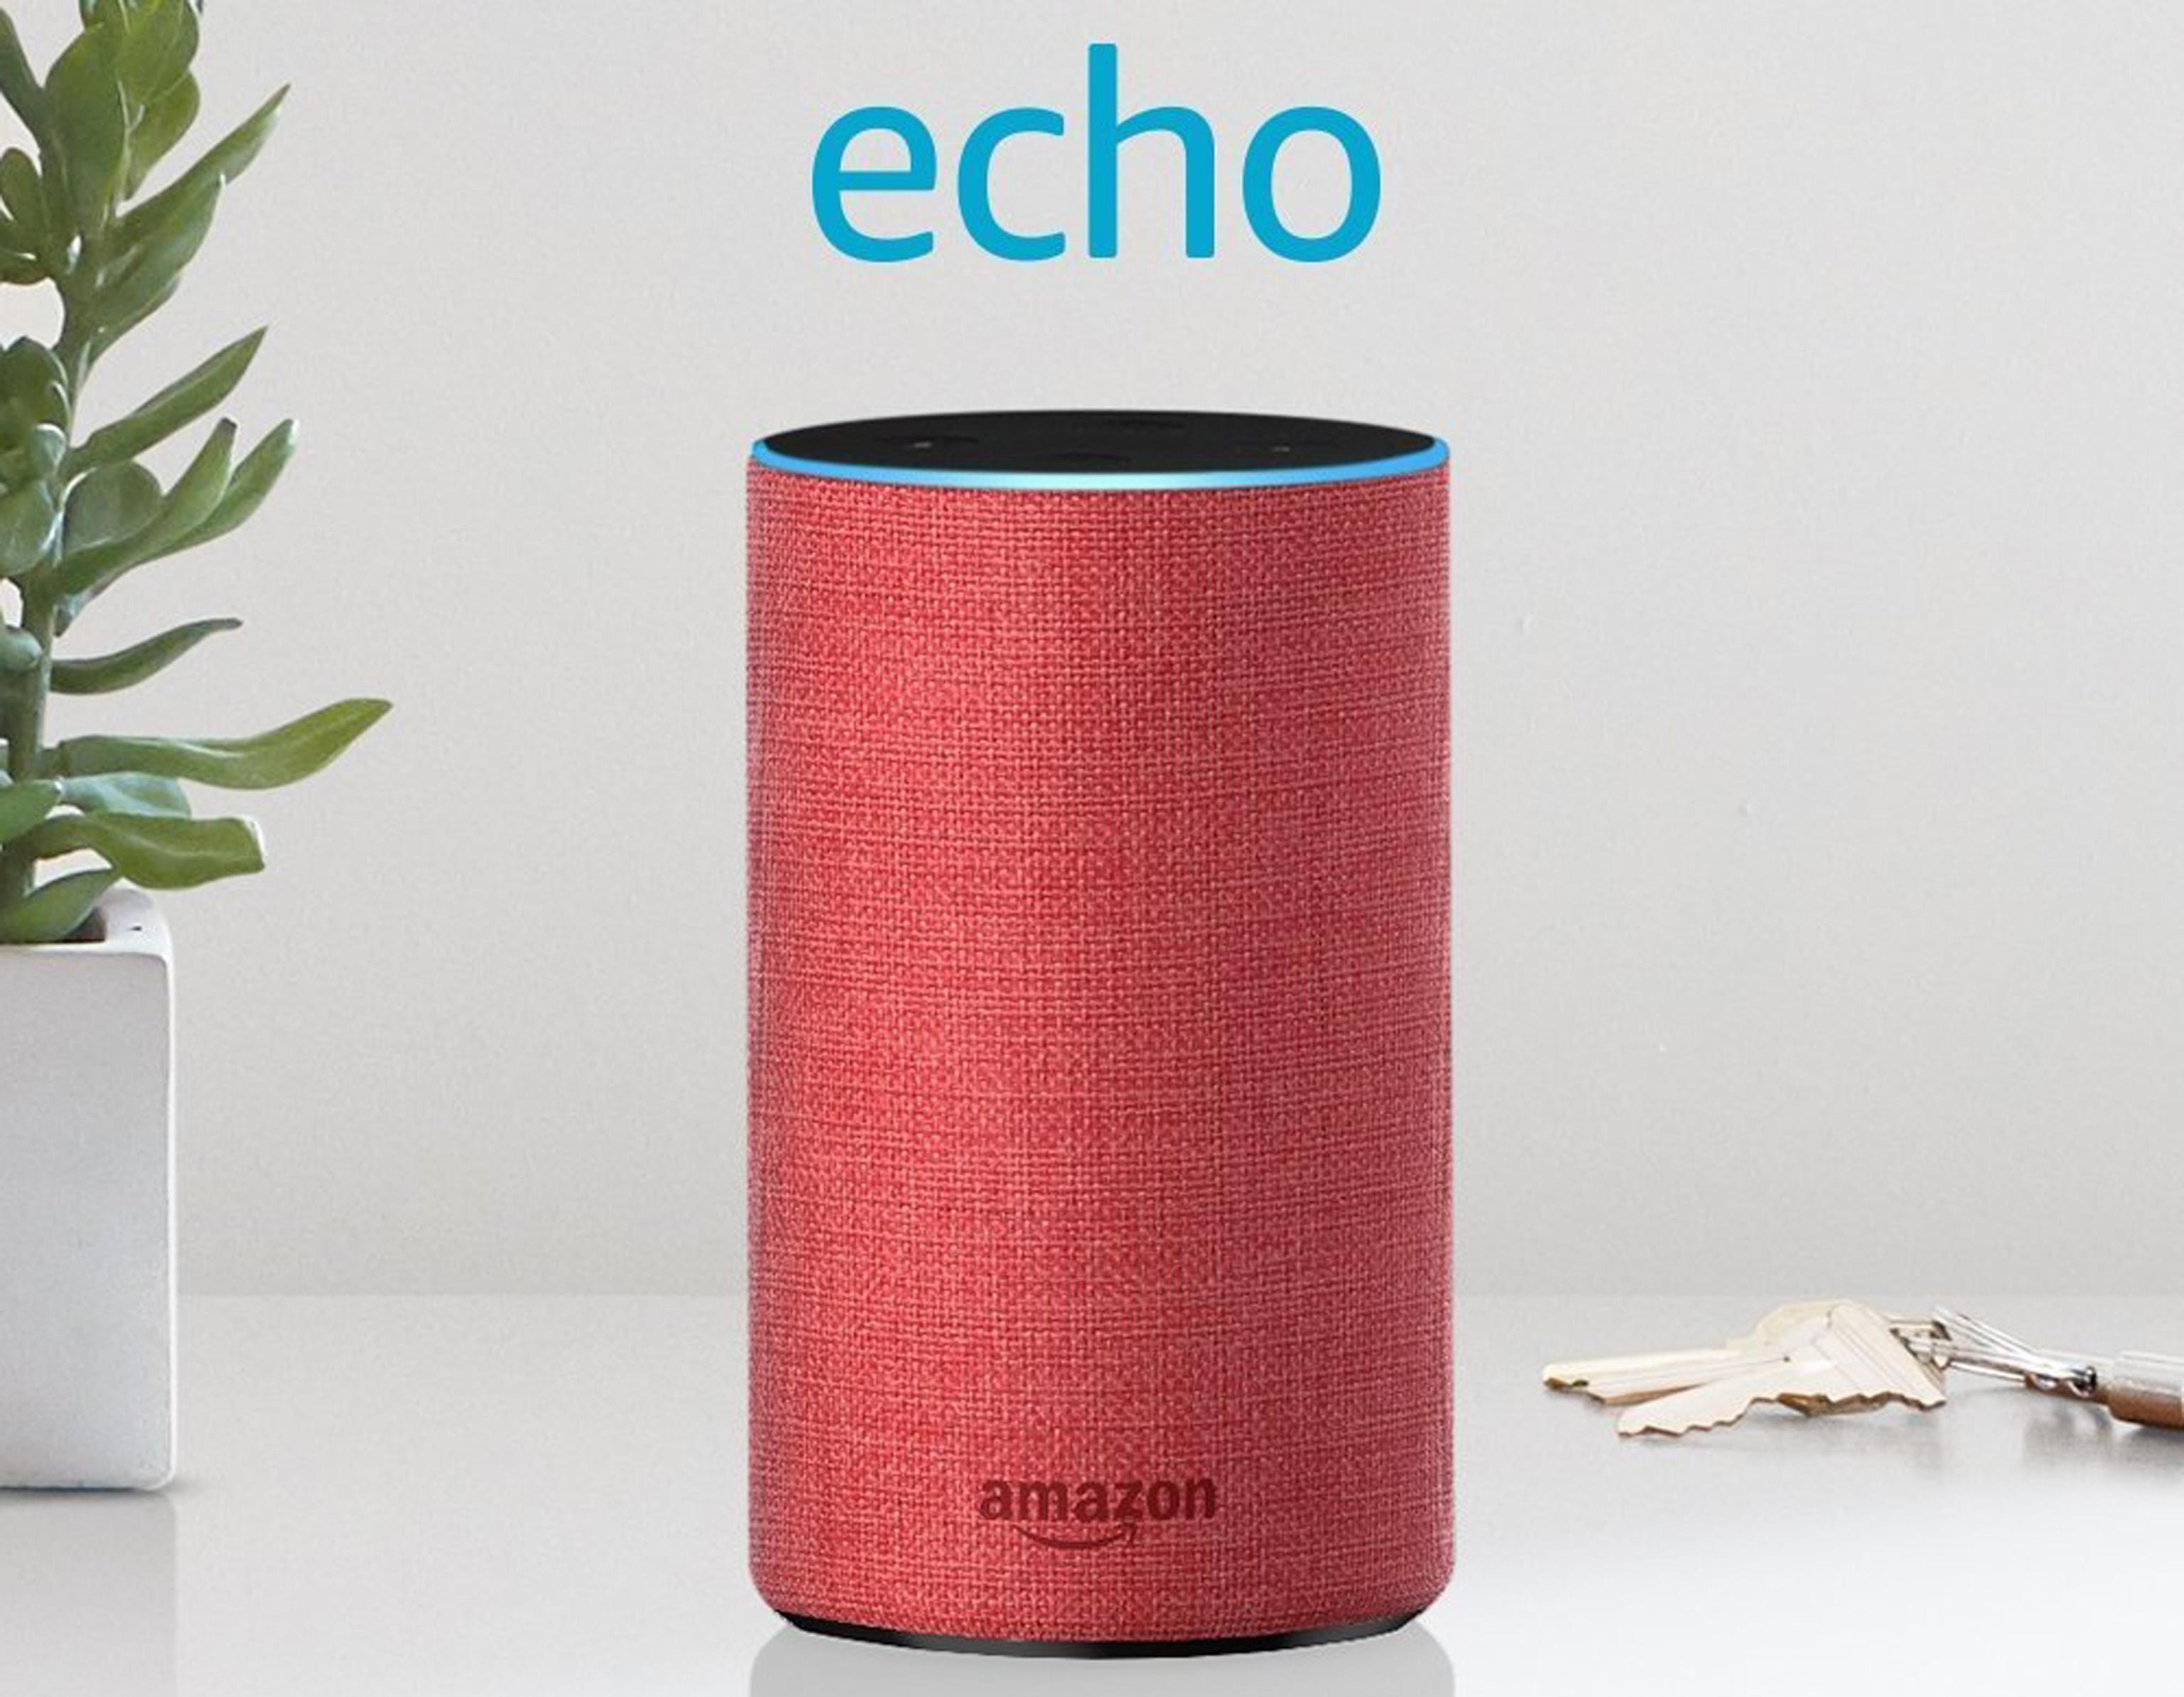 Amazon, Echo rosso per la lotta all'Aids